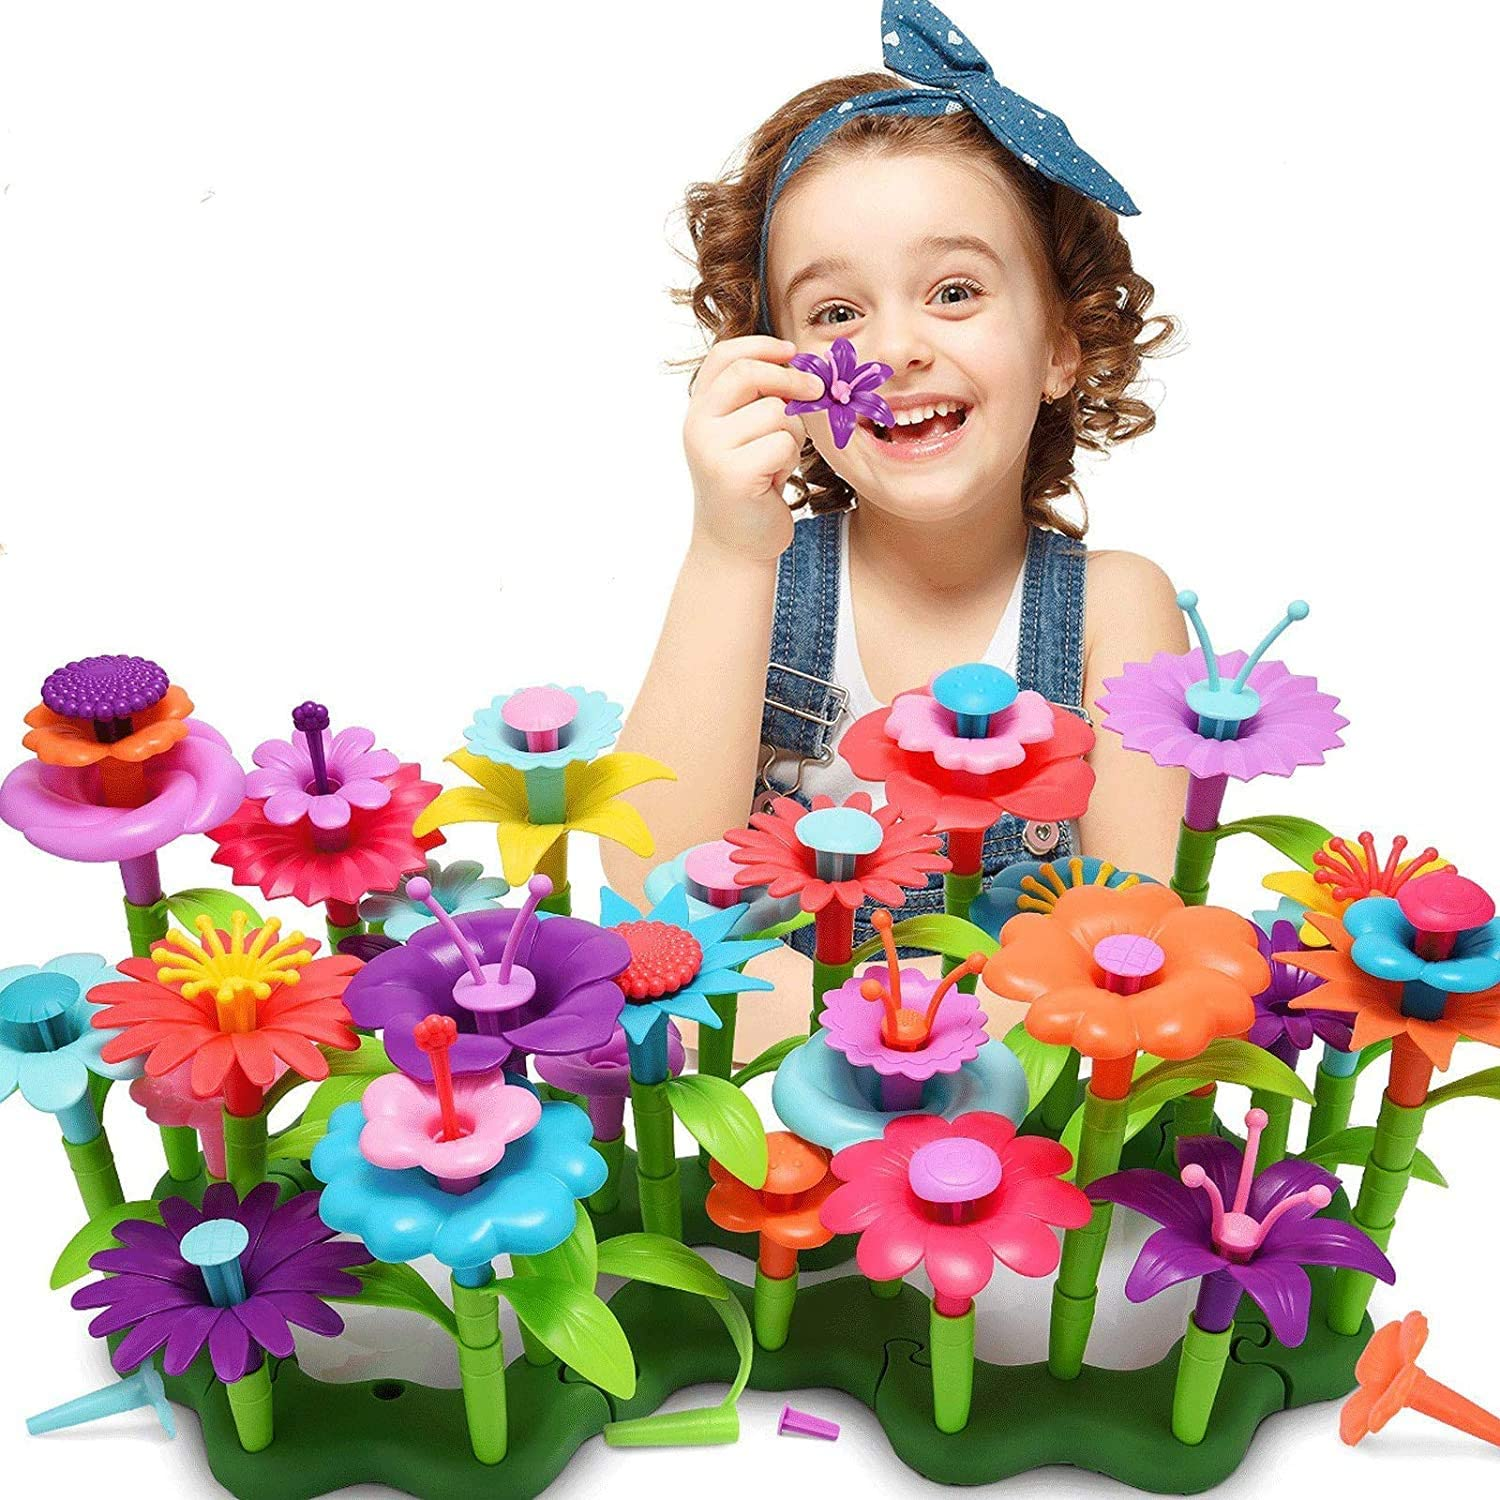 Zeesean Flower Garden Building Toys for 3, 4, 5, 6 Year Old Boy Girls Birthday Gifts Build A Garden Arts and Crafts Play Set 148 Pieces